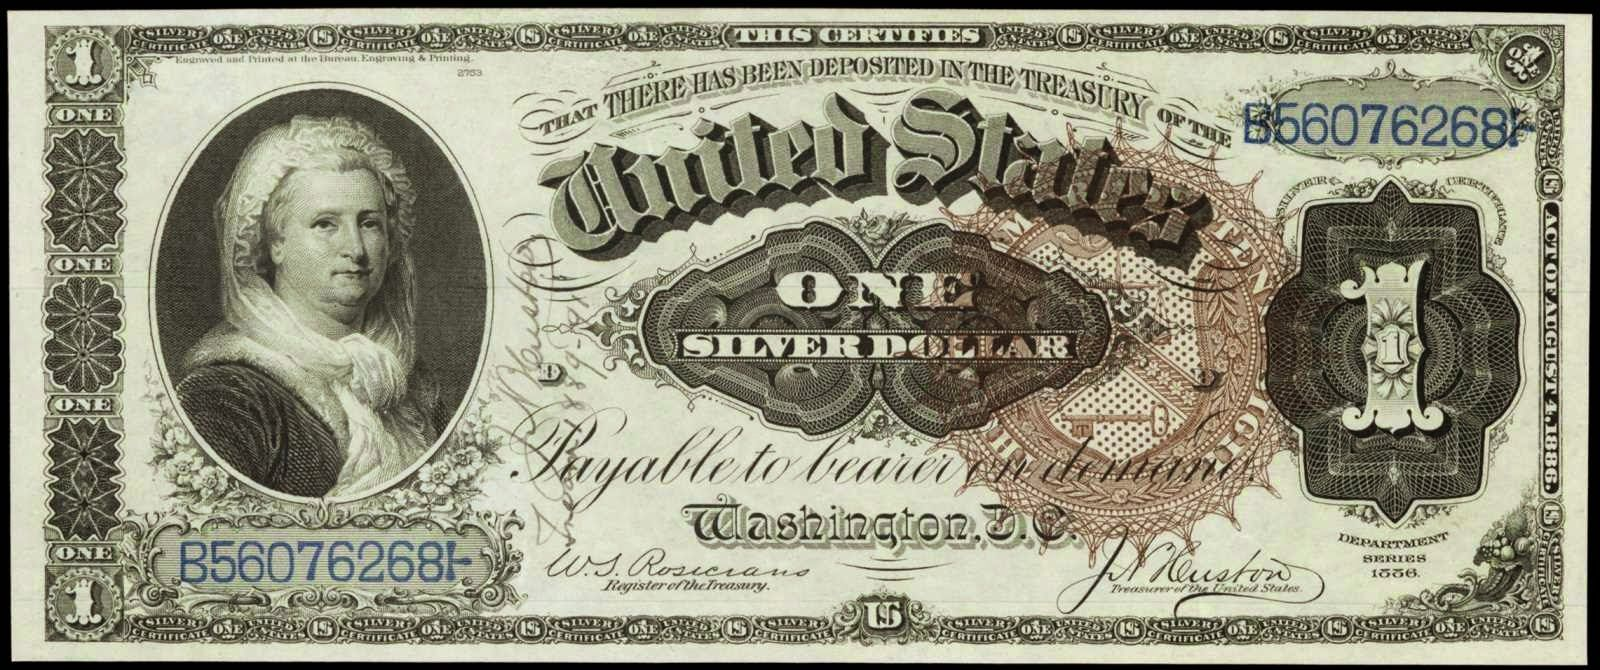 Paper Money Of The United States 1886 One Dollar Silver Certificate